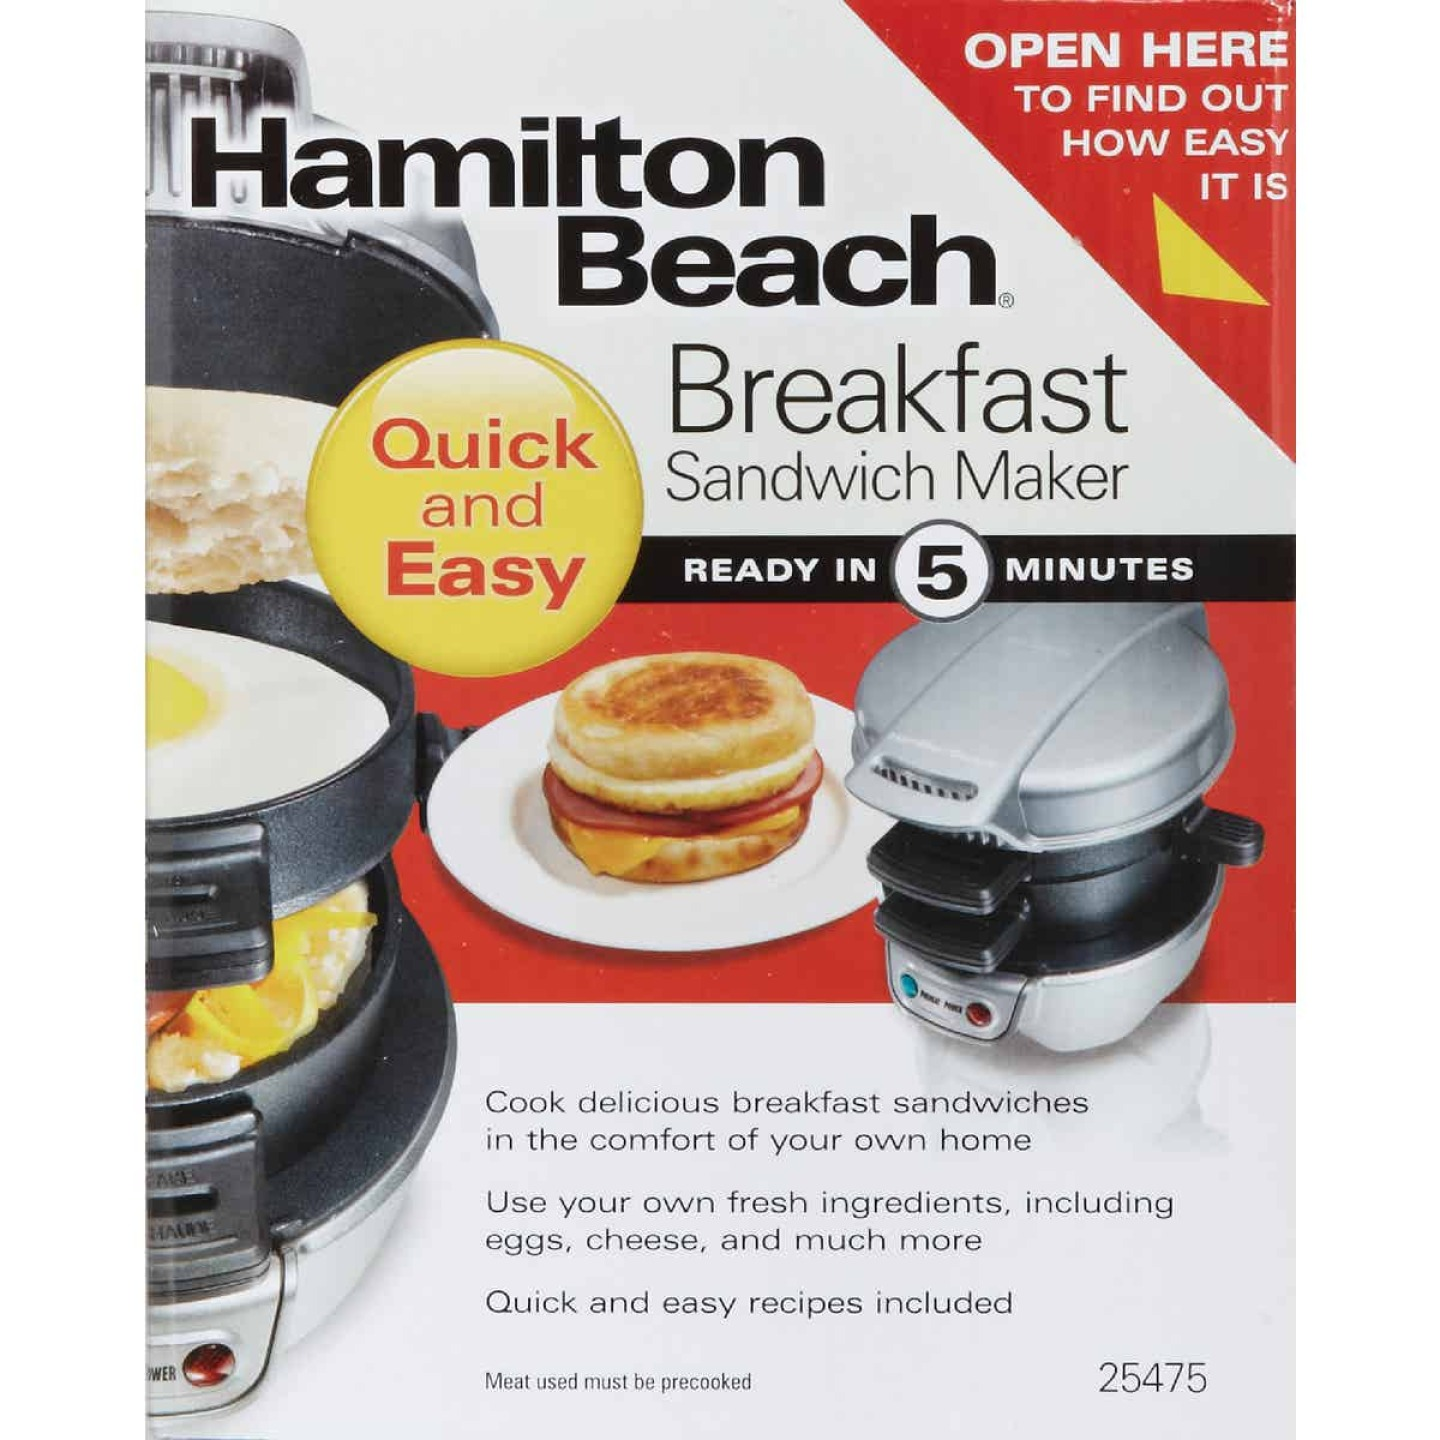 Hamilton Beach Breakfast Sandwich Maker Image 4